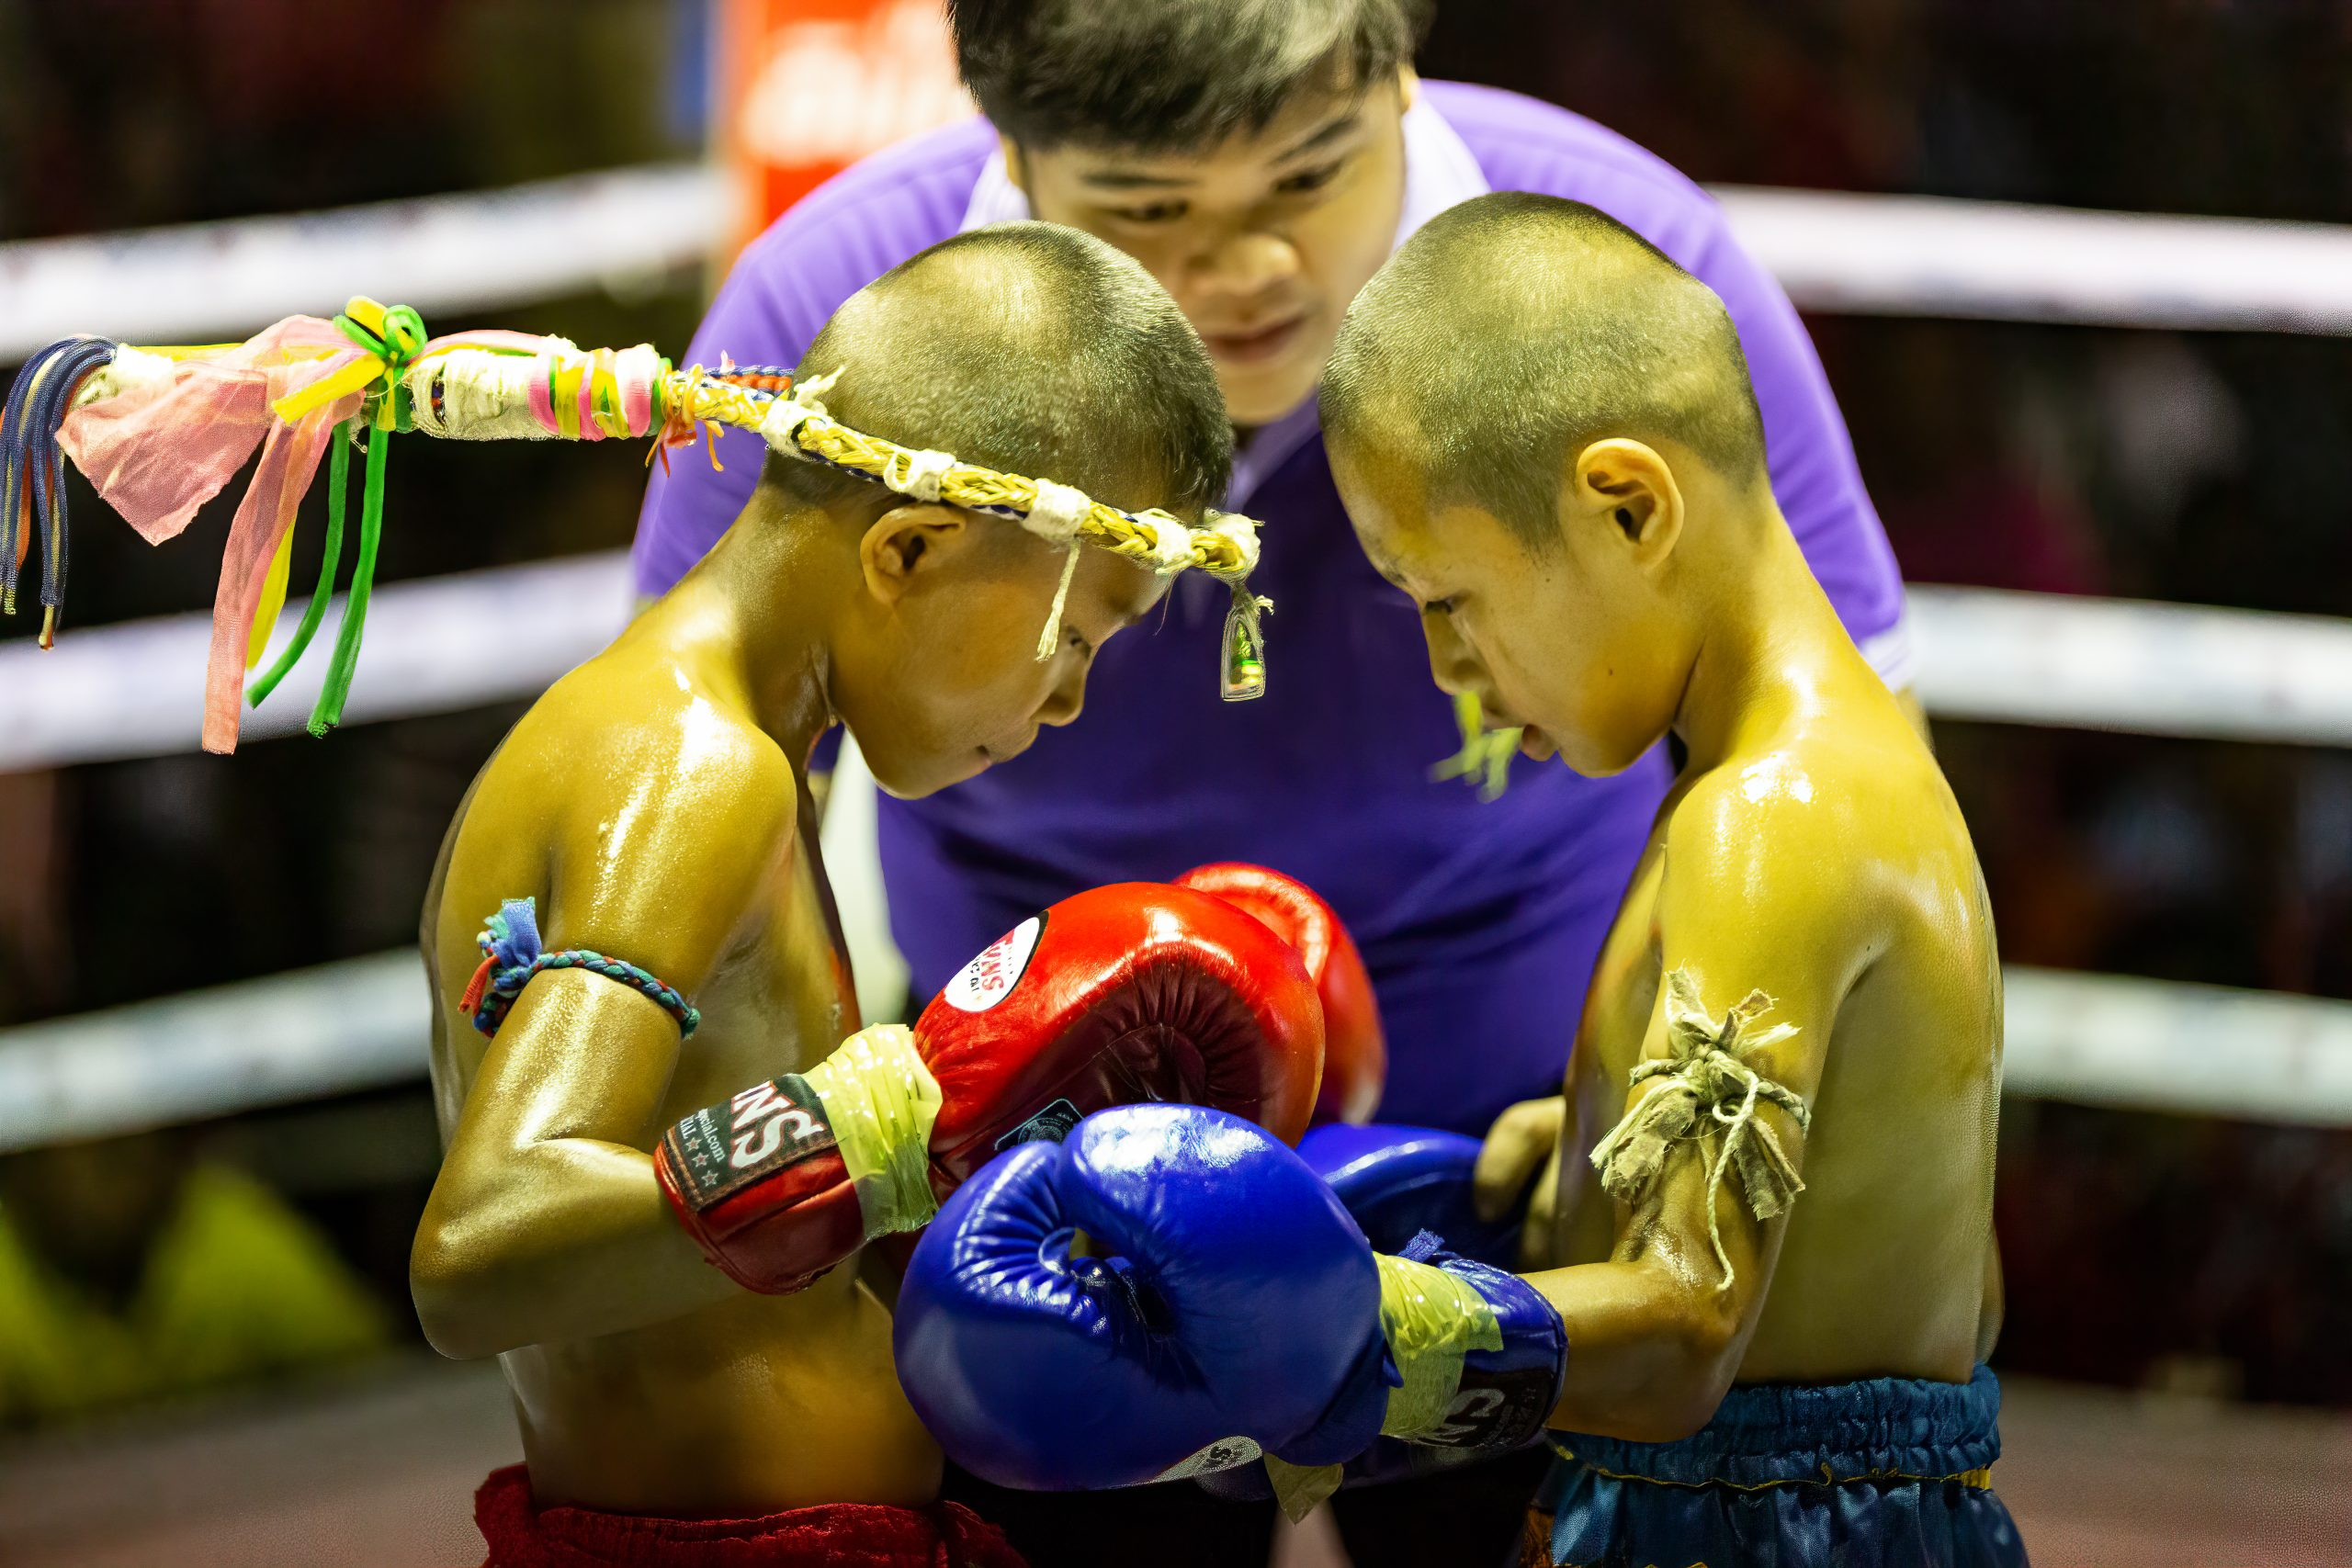 children muay thai fighters praying